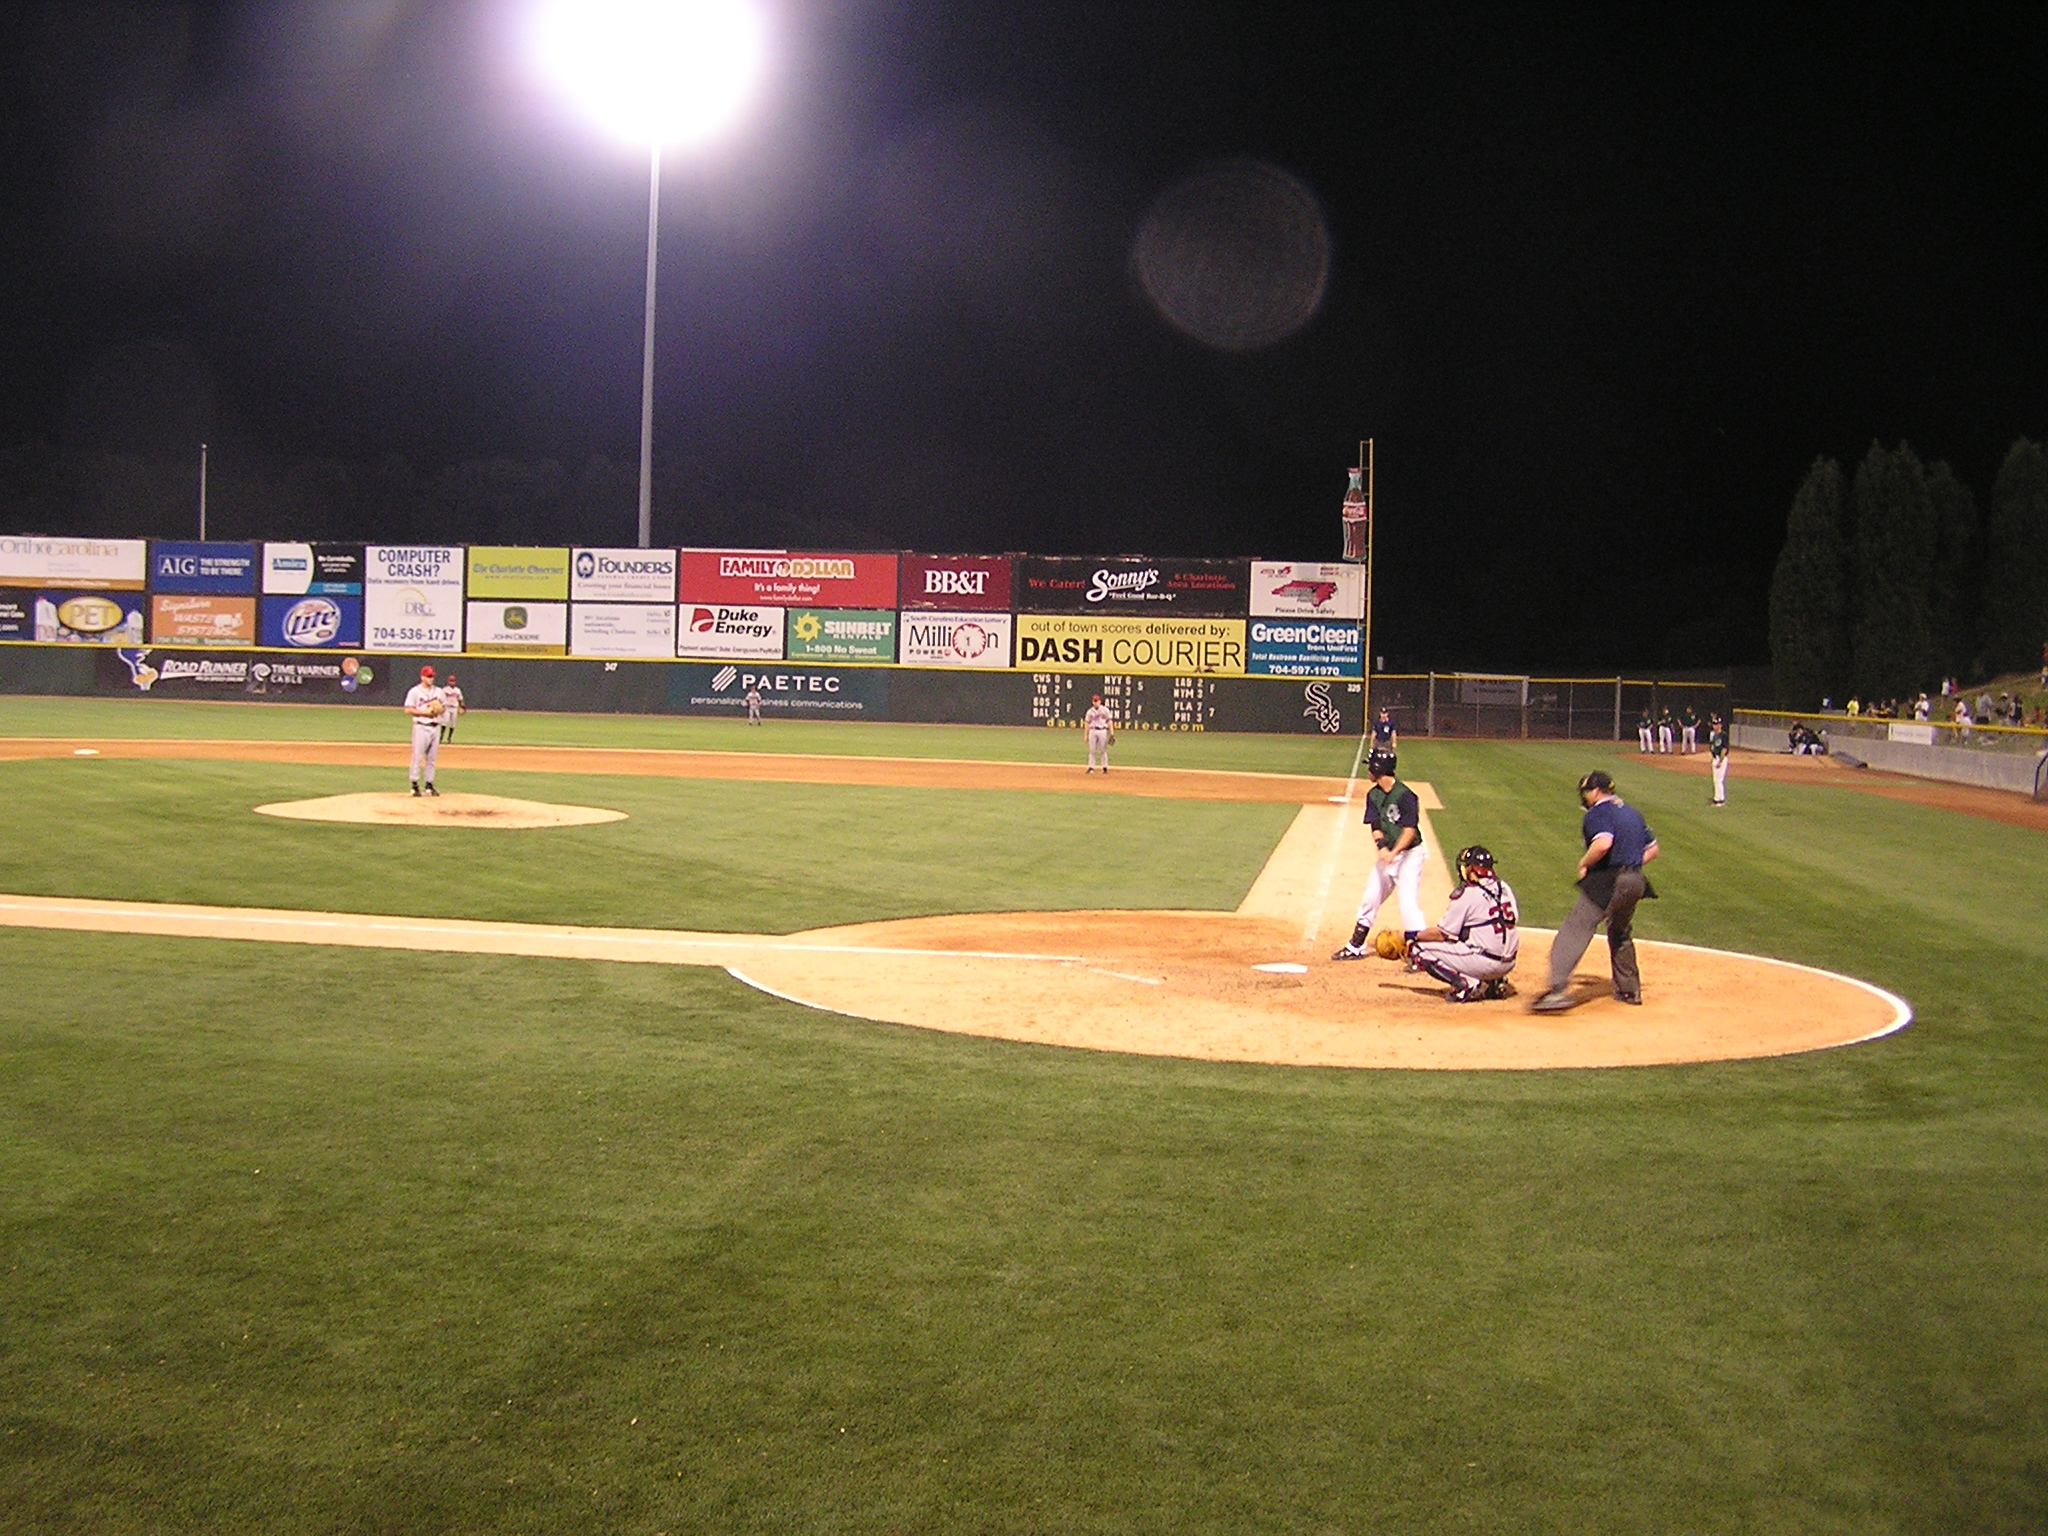 Charlotte Knights - Fort Mill, South Carolina